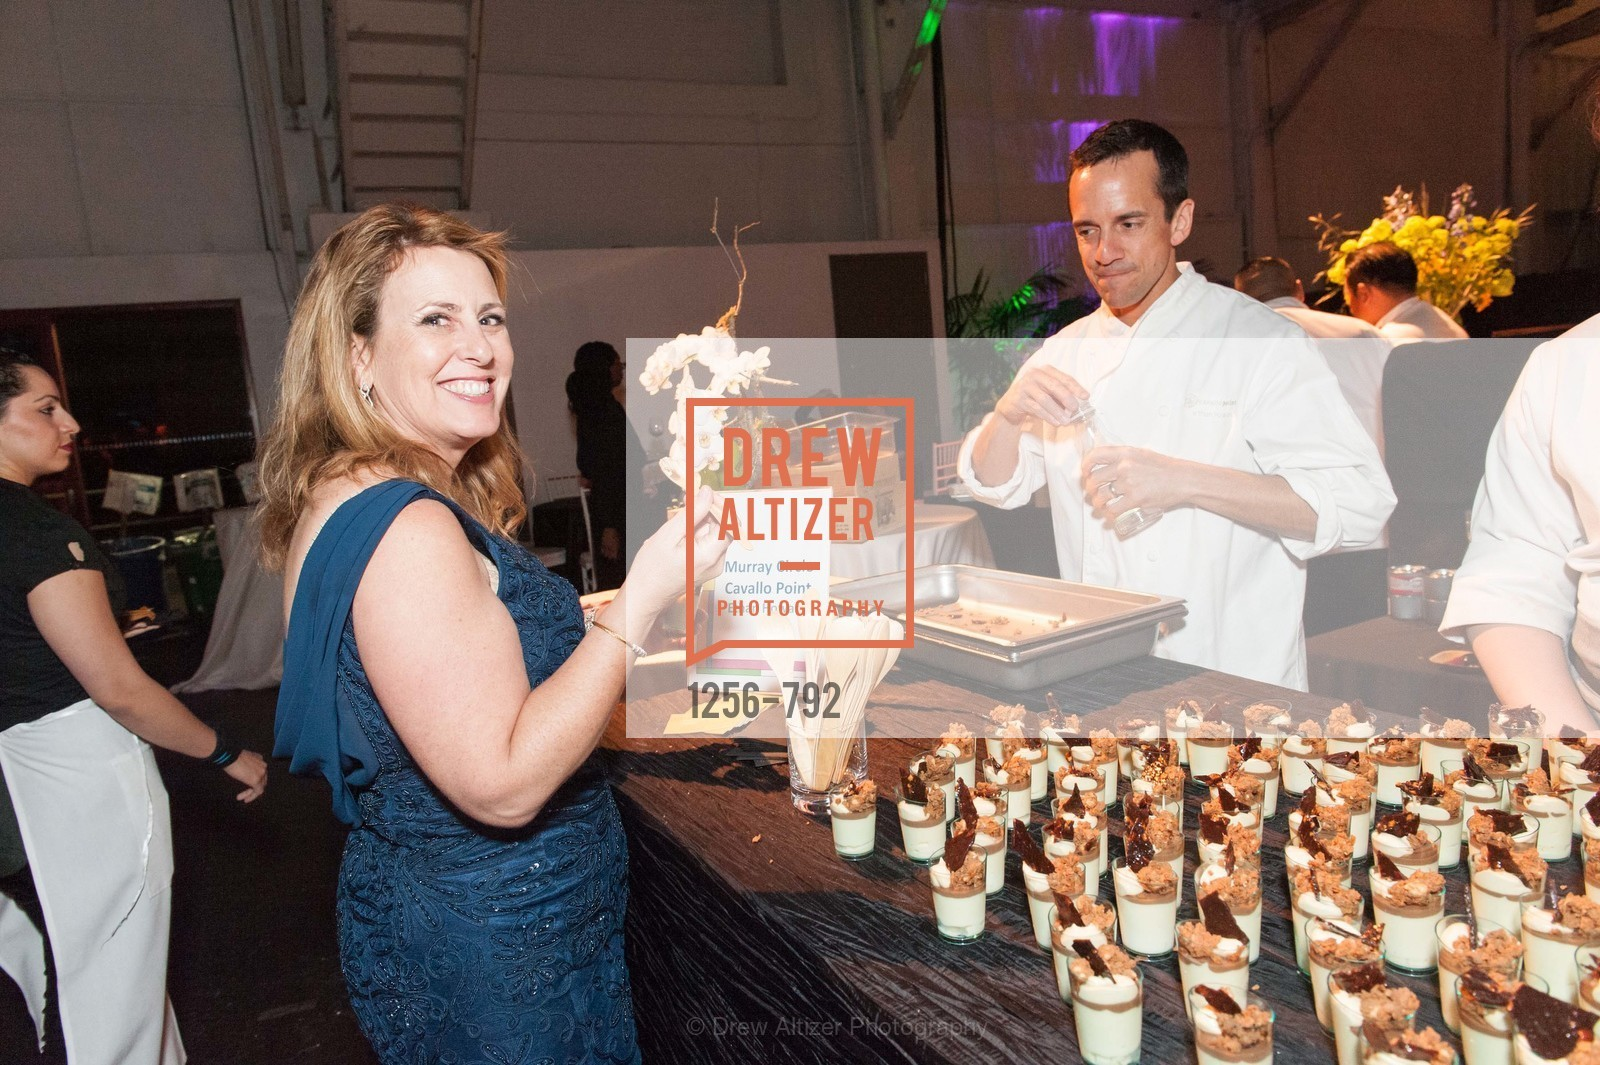 Ethan Howard, MEALS ON WHEELS OF SAN FRANCISCO'S 28th Annual Star Chefs and Vintners Gala, US, April 19th, 2015,Drew Altizer, Drew Altizer Photography, full-service agency, private events, San Francisco photographer, photographer california